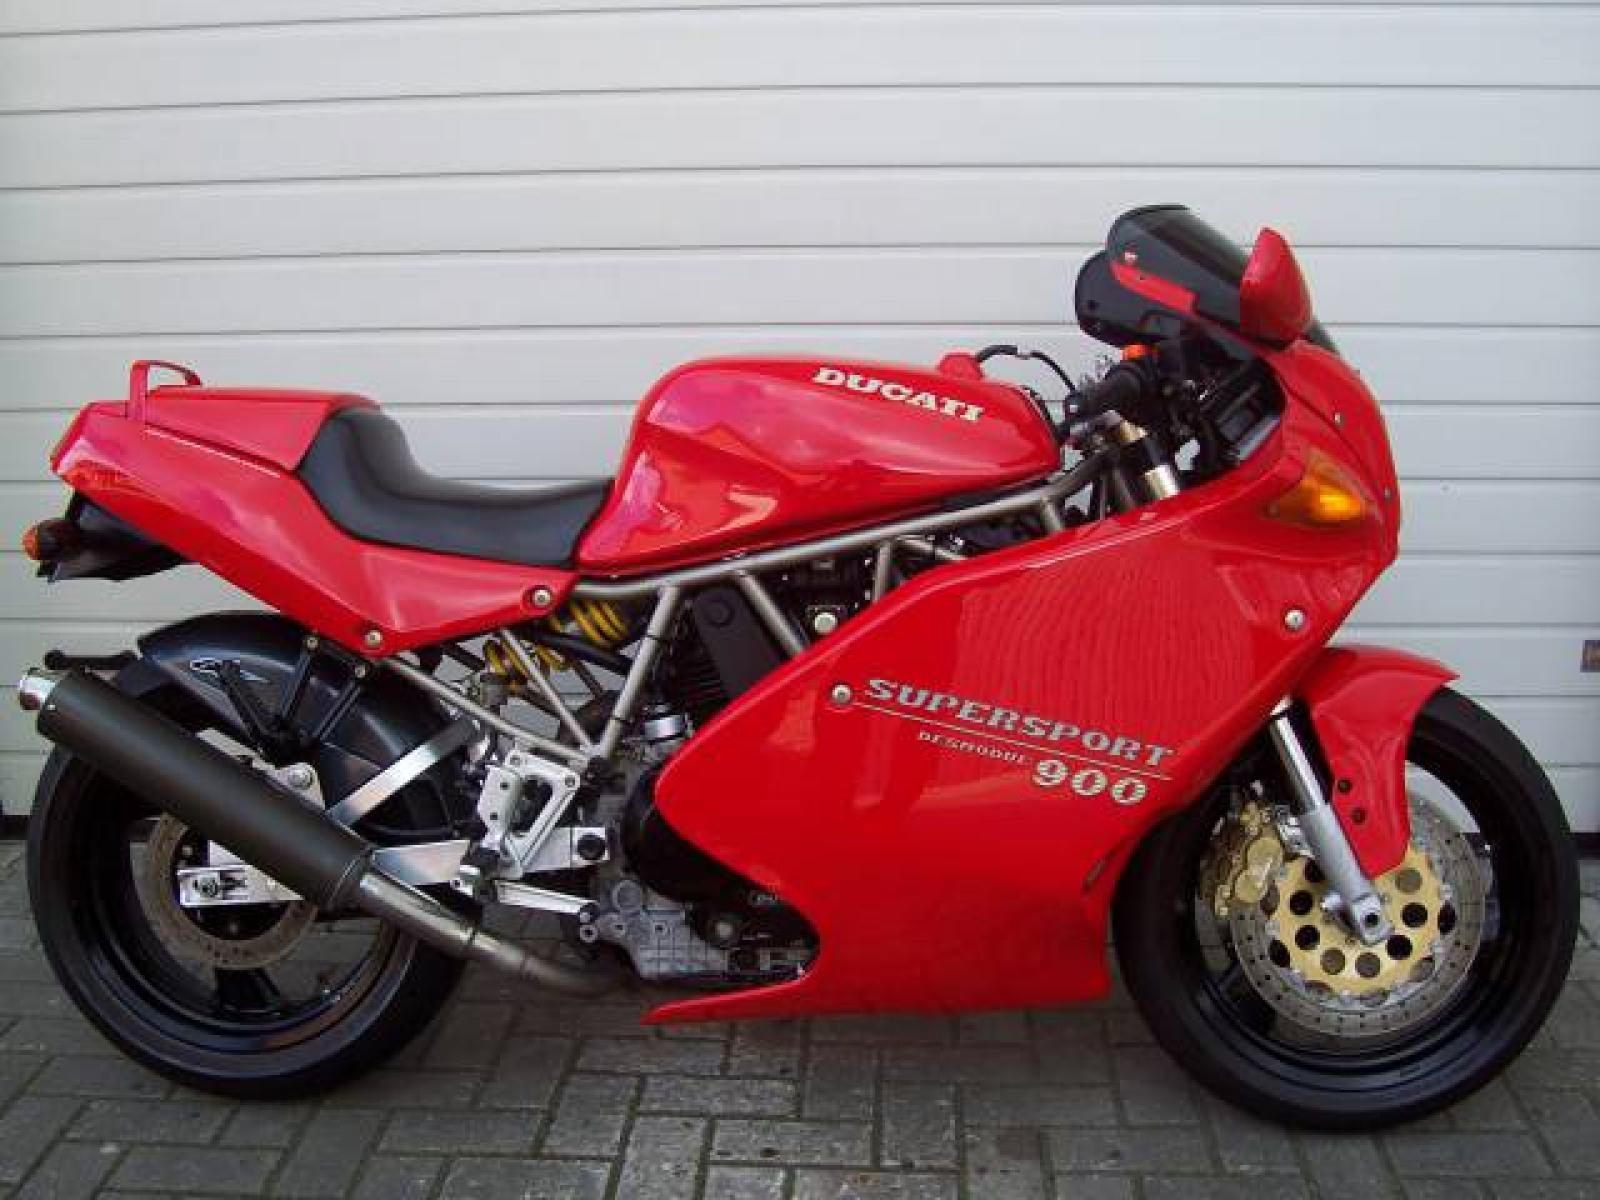 Ducati 900 SS Carenata 2001 wallpapers #11106